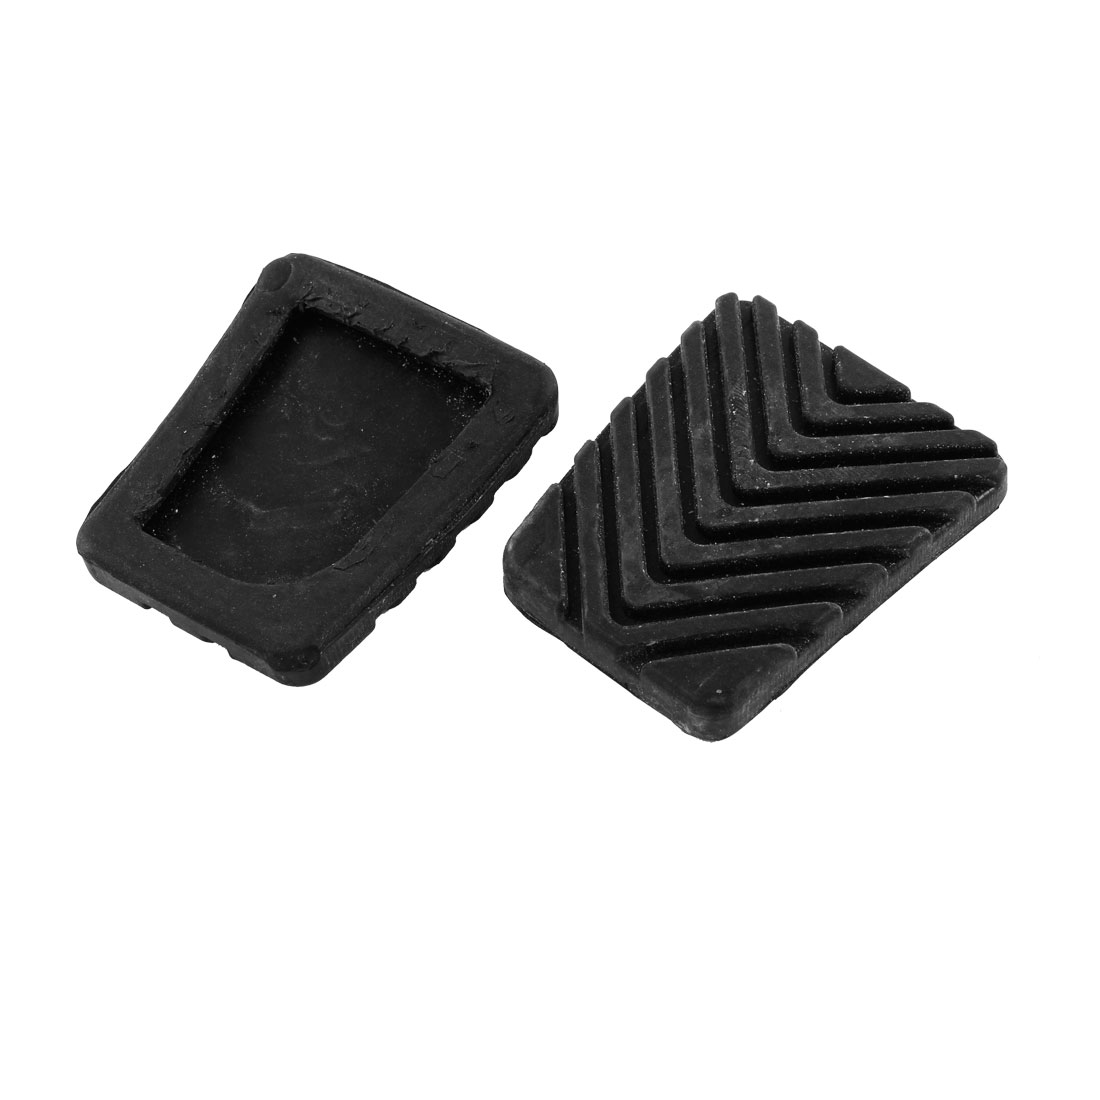 2Pcs Black Rubber Clutch Pedal Pad for Car